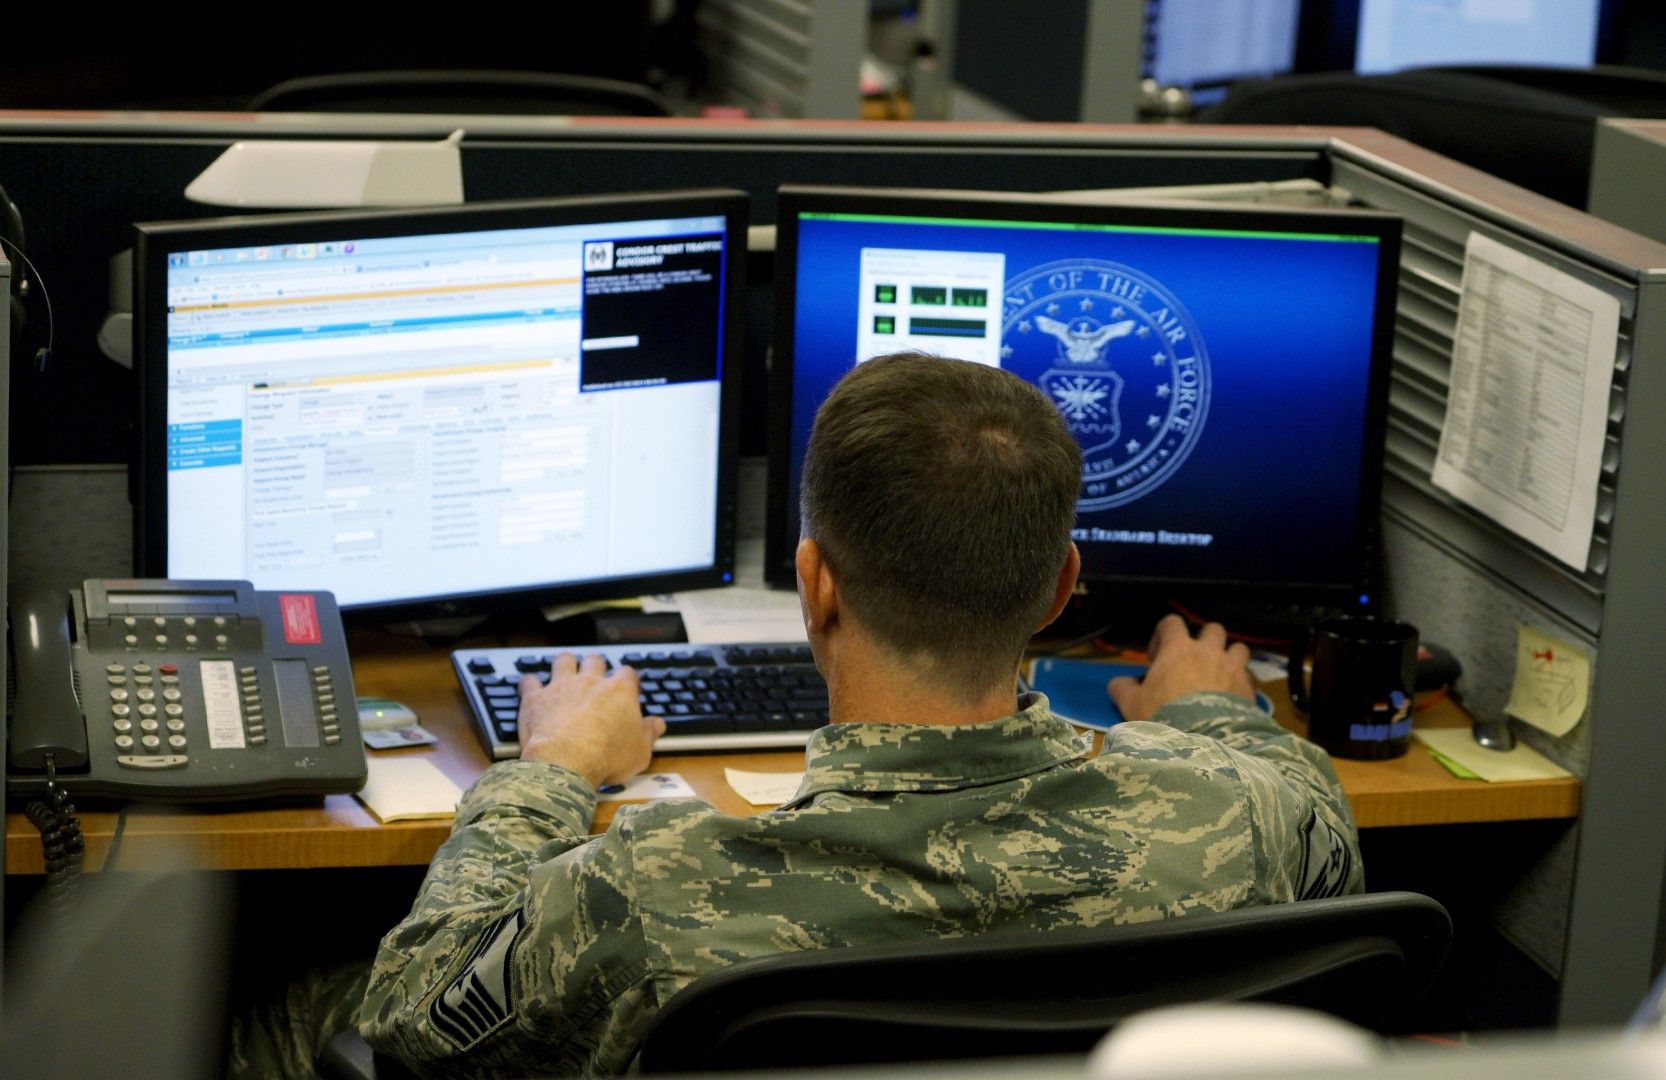 A U.S. Air Force airman works at the 561st Network Operations Squadron (NOS) at Petersen Air Force Base in Colorado Springs, Colorado July 20, 2015.  The 561st NOS executes defensive cyber operations in response to U.S. Cyber Command orders and intelligence based threats.    REUTERS/Rick Wilking - GF10000165291